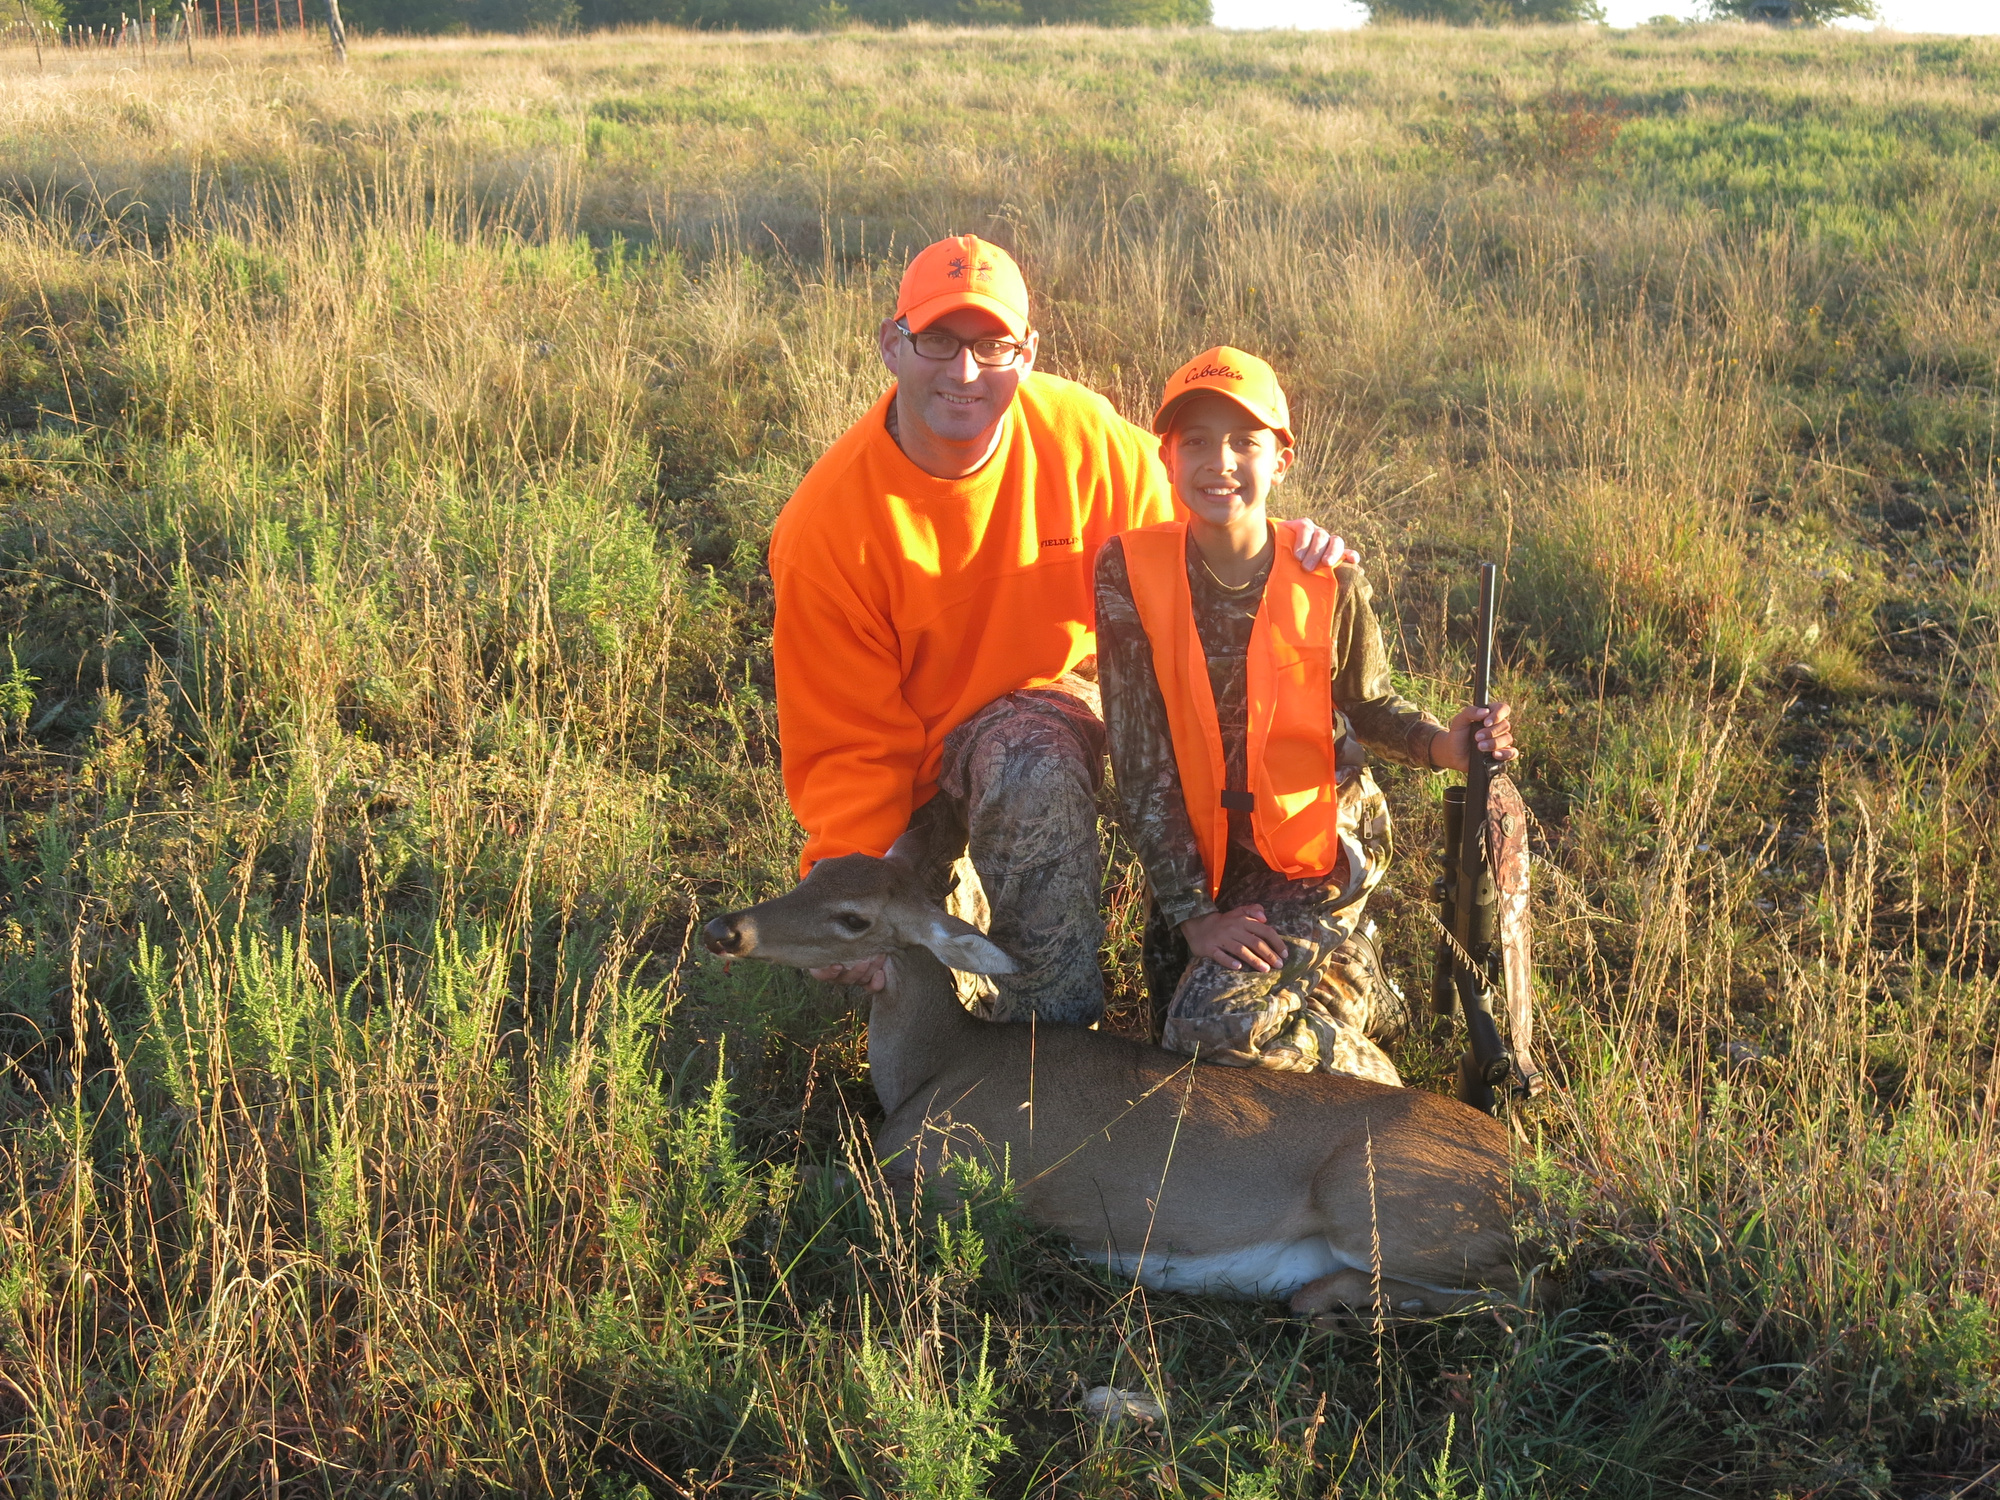 Jackson Adams, 2014 Youth Hunter, shown with his first deer.